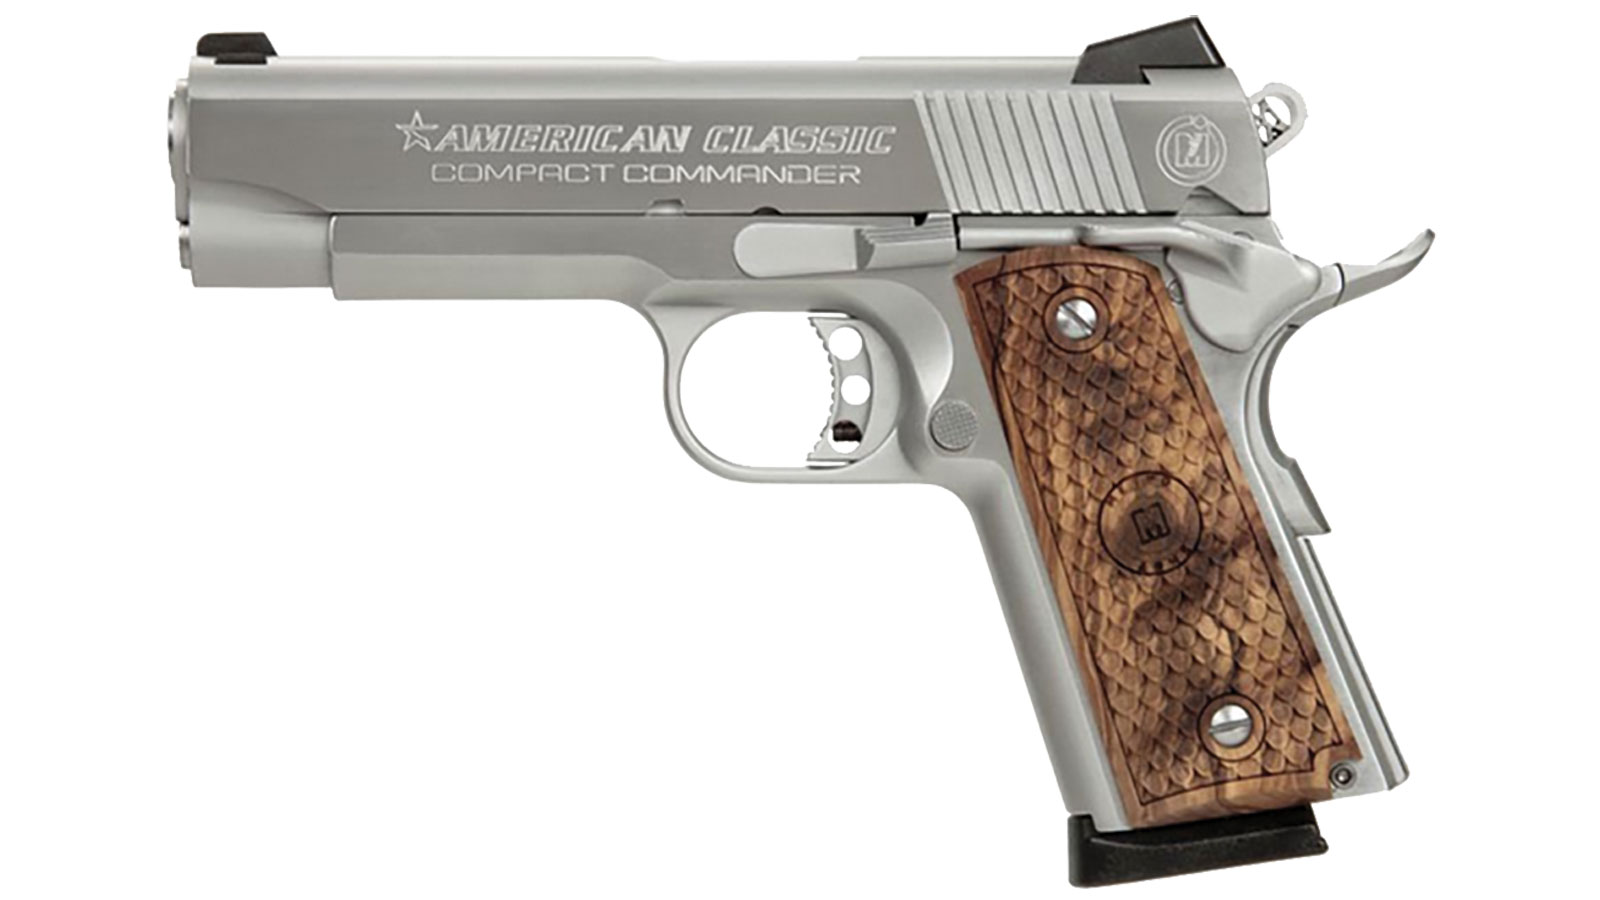 American Classic ACCC45DT 1911 Compact Commander Single 45 Automatic Colt Pistol (ACP) 4.3 7+1 Hardwood Grip Hard Chrome in.